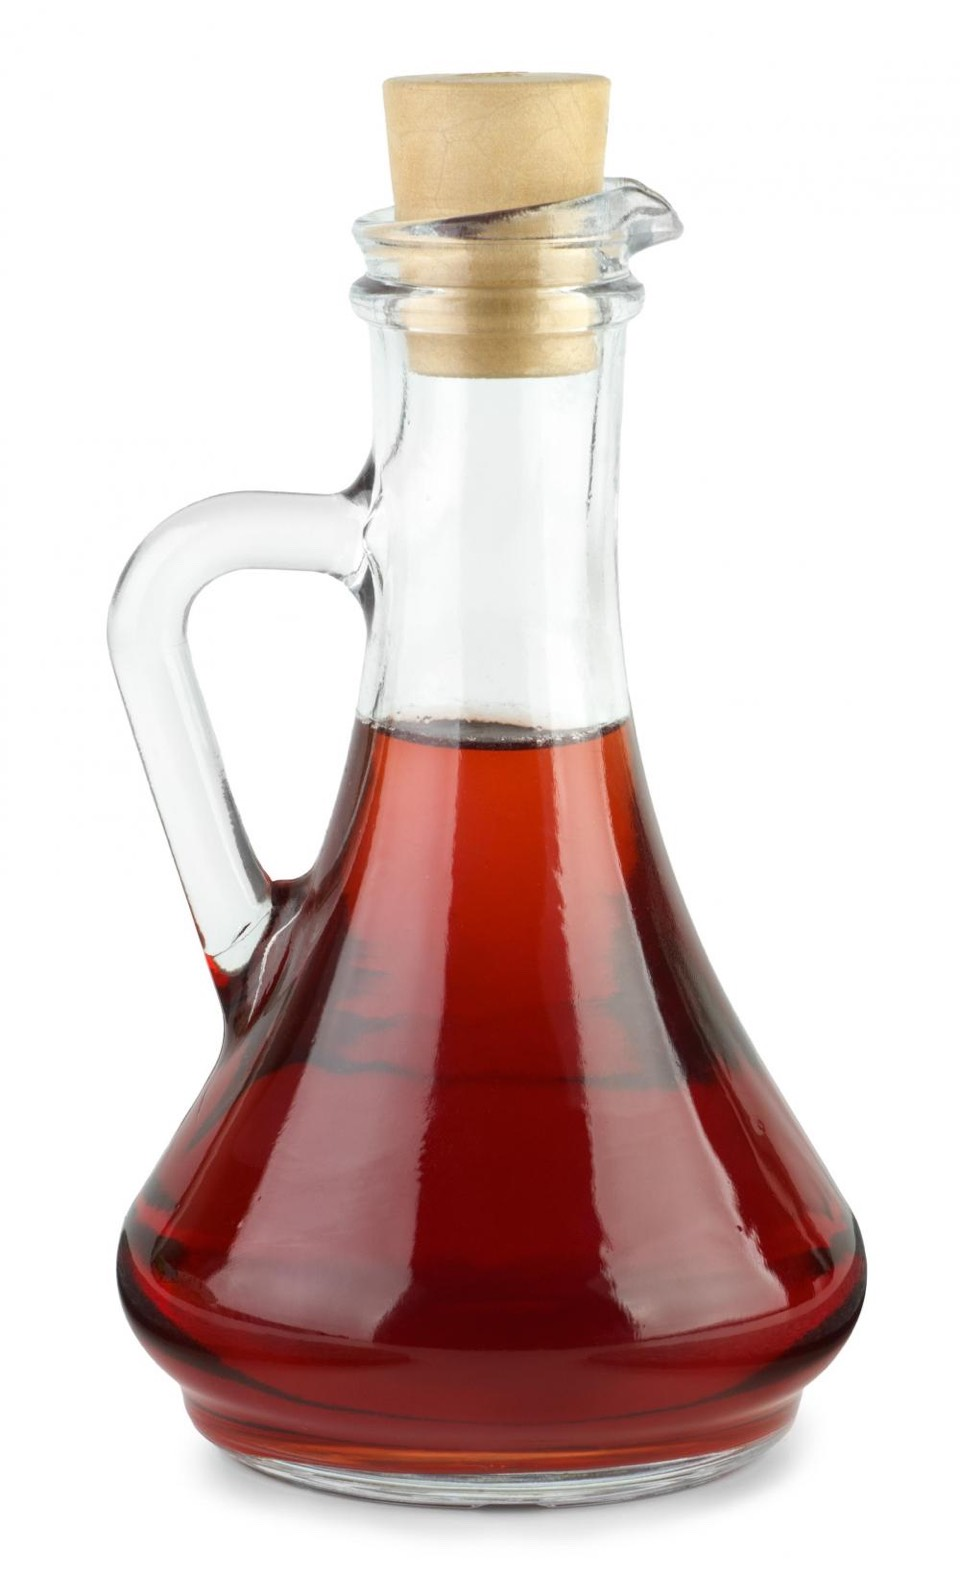 1/4 cup of vinegar